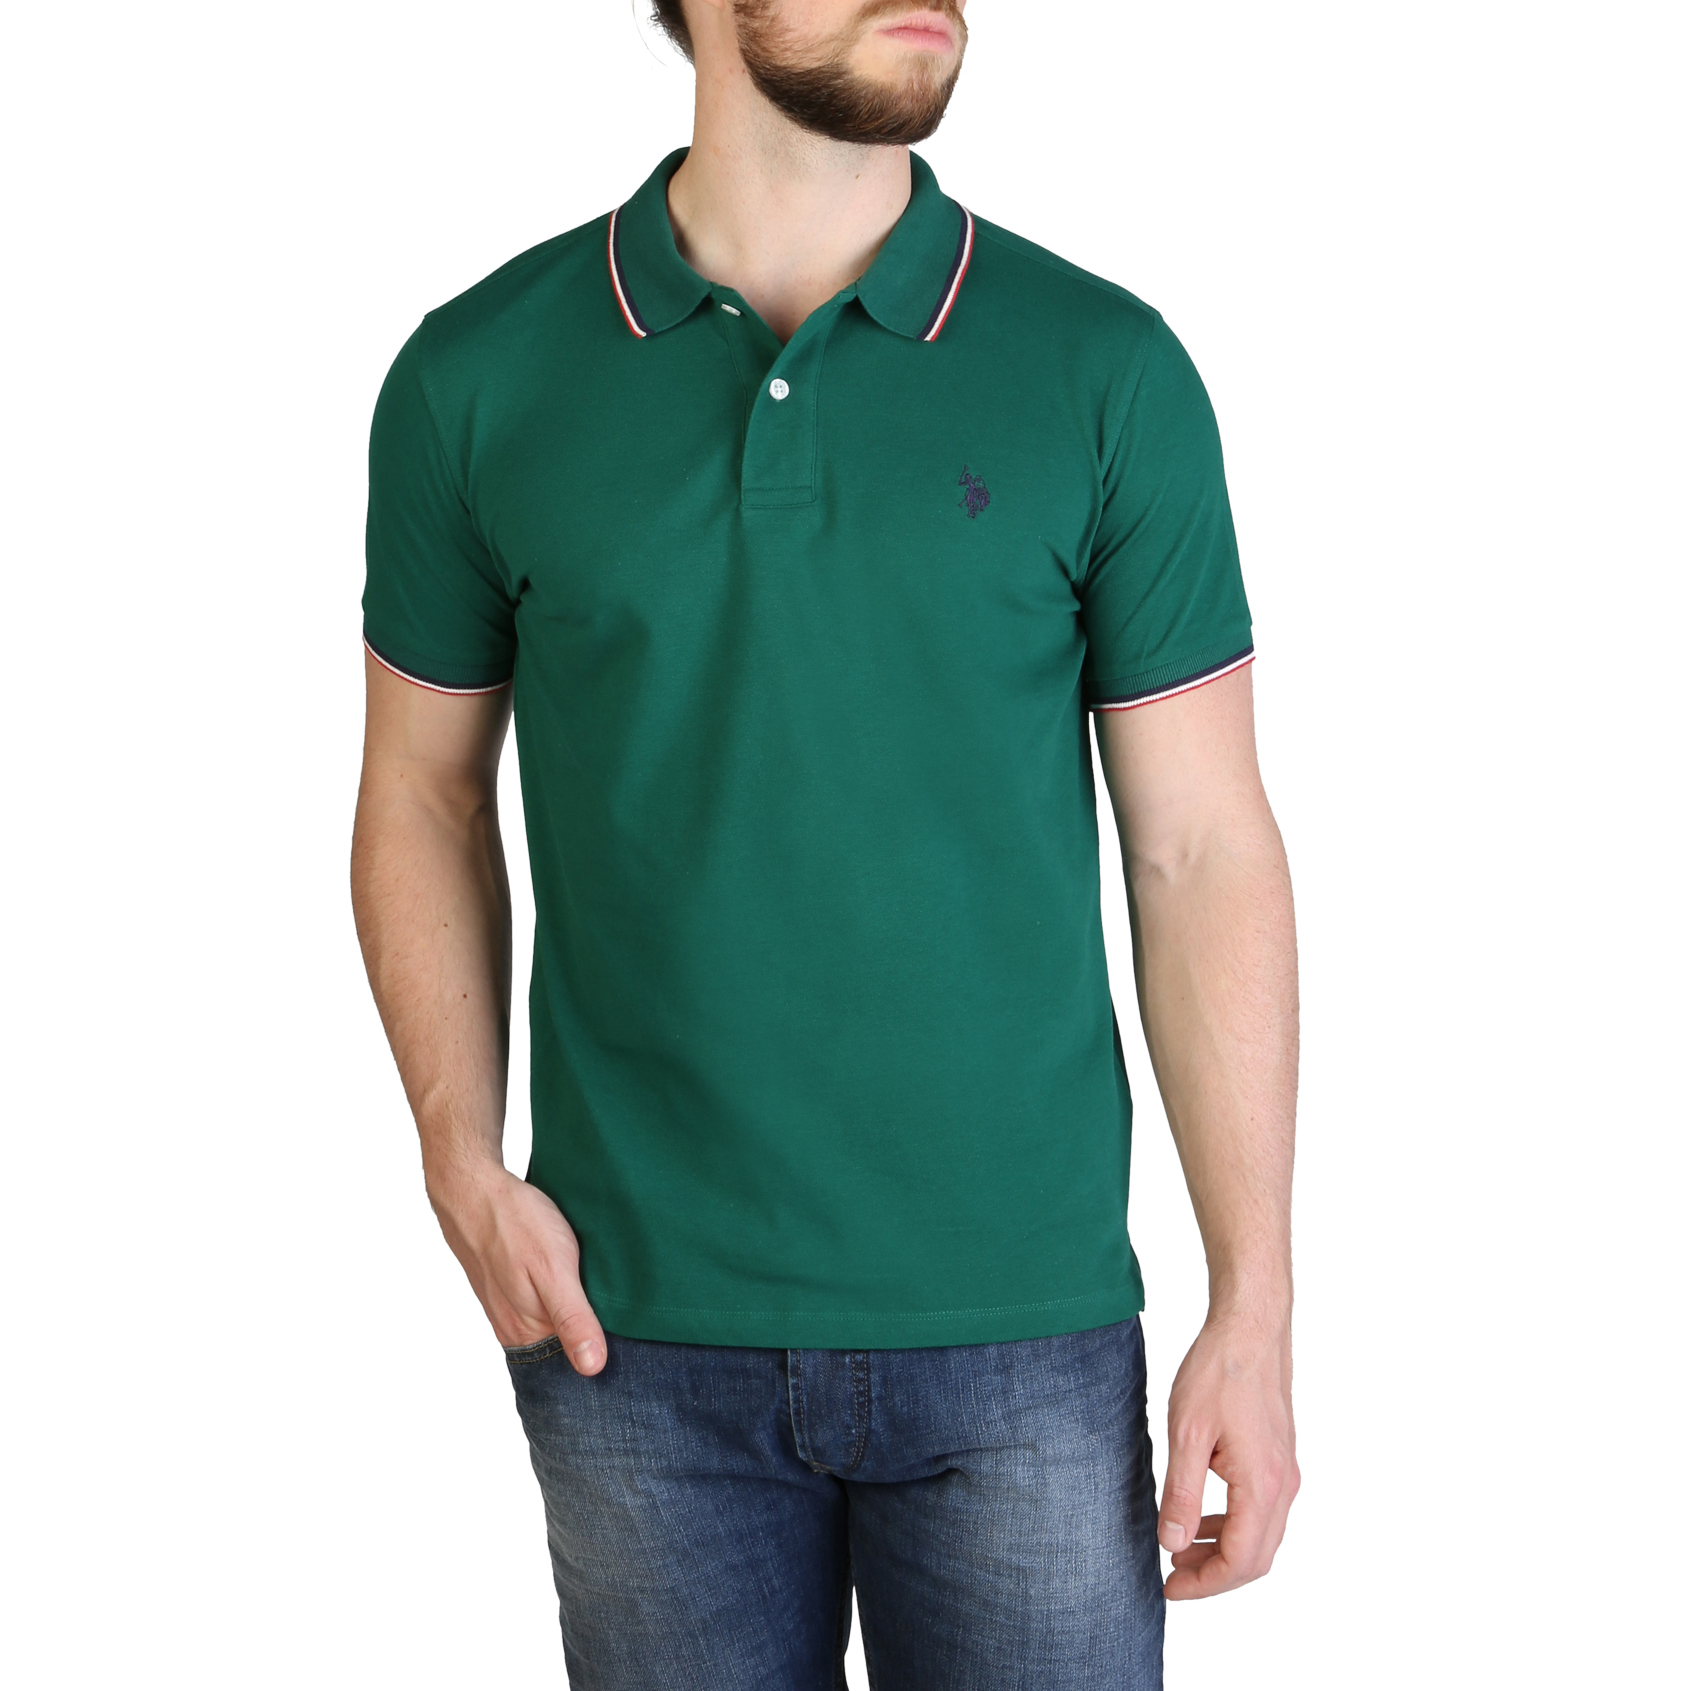 U.S. Polo Assn. - 59619 - Green